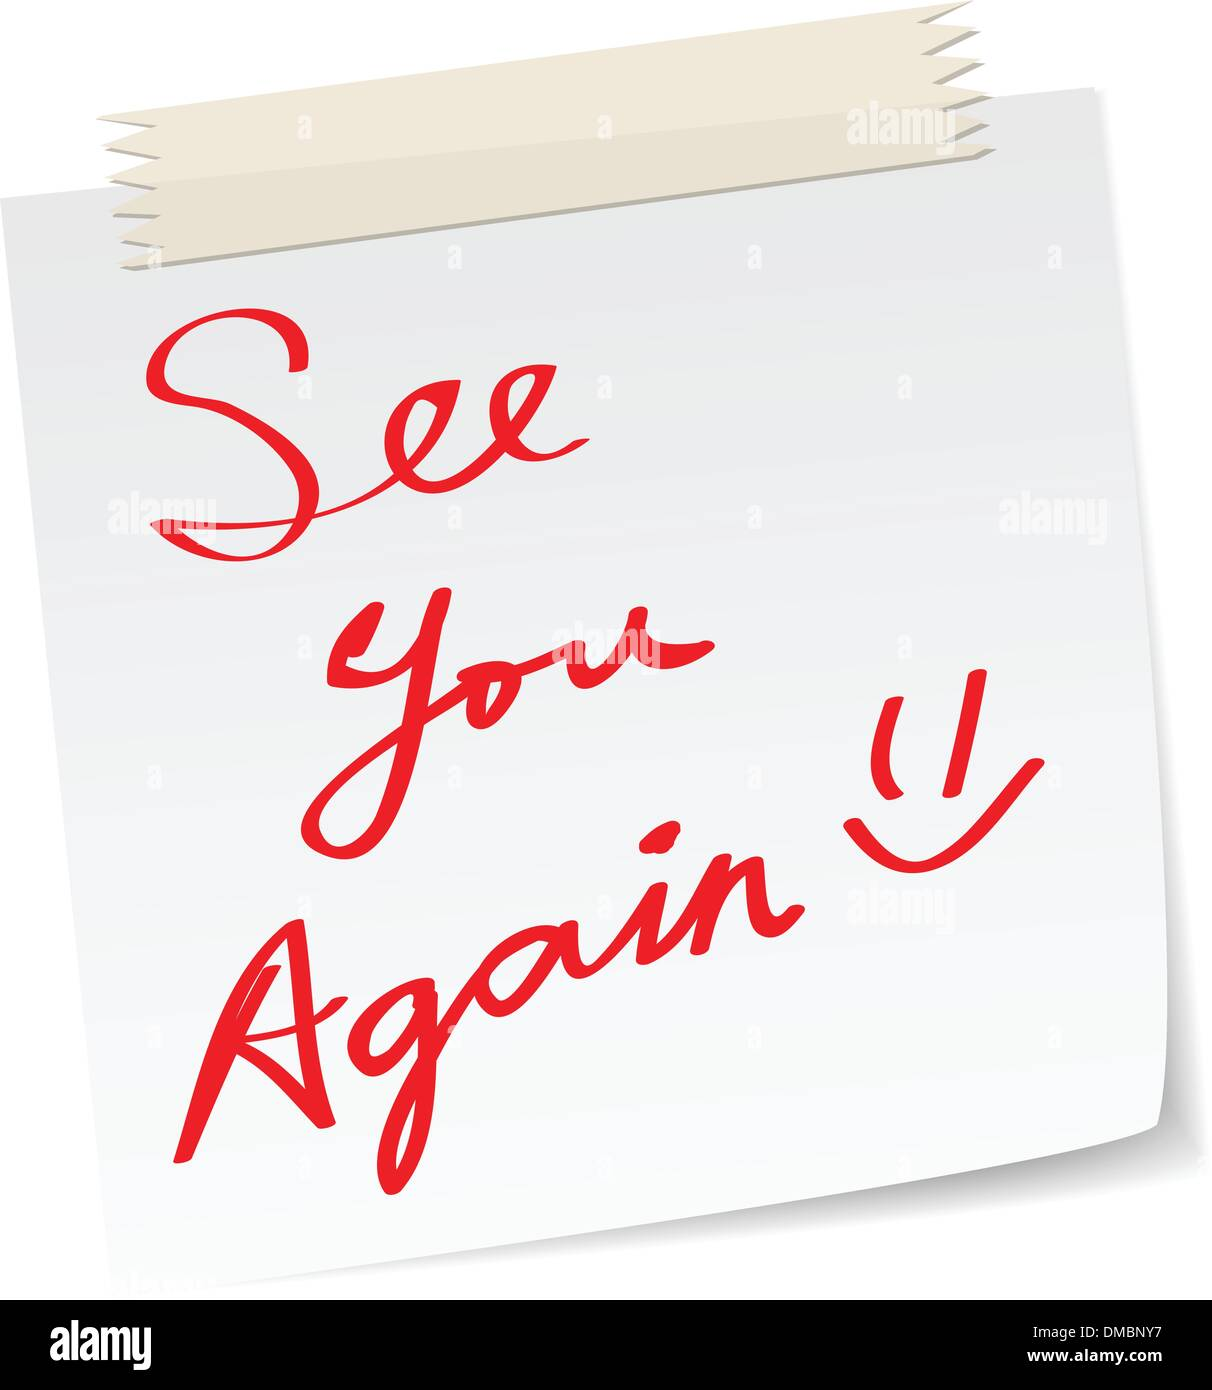 see you again notes - Stock Image